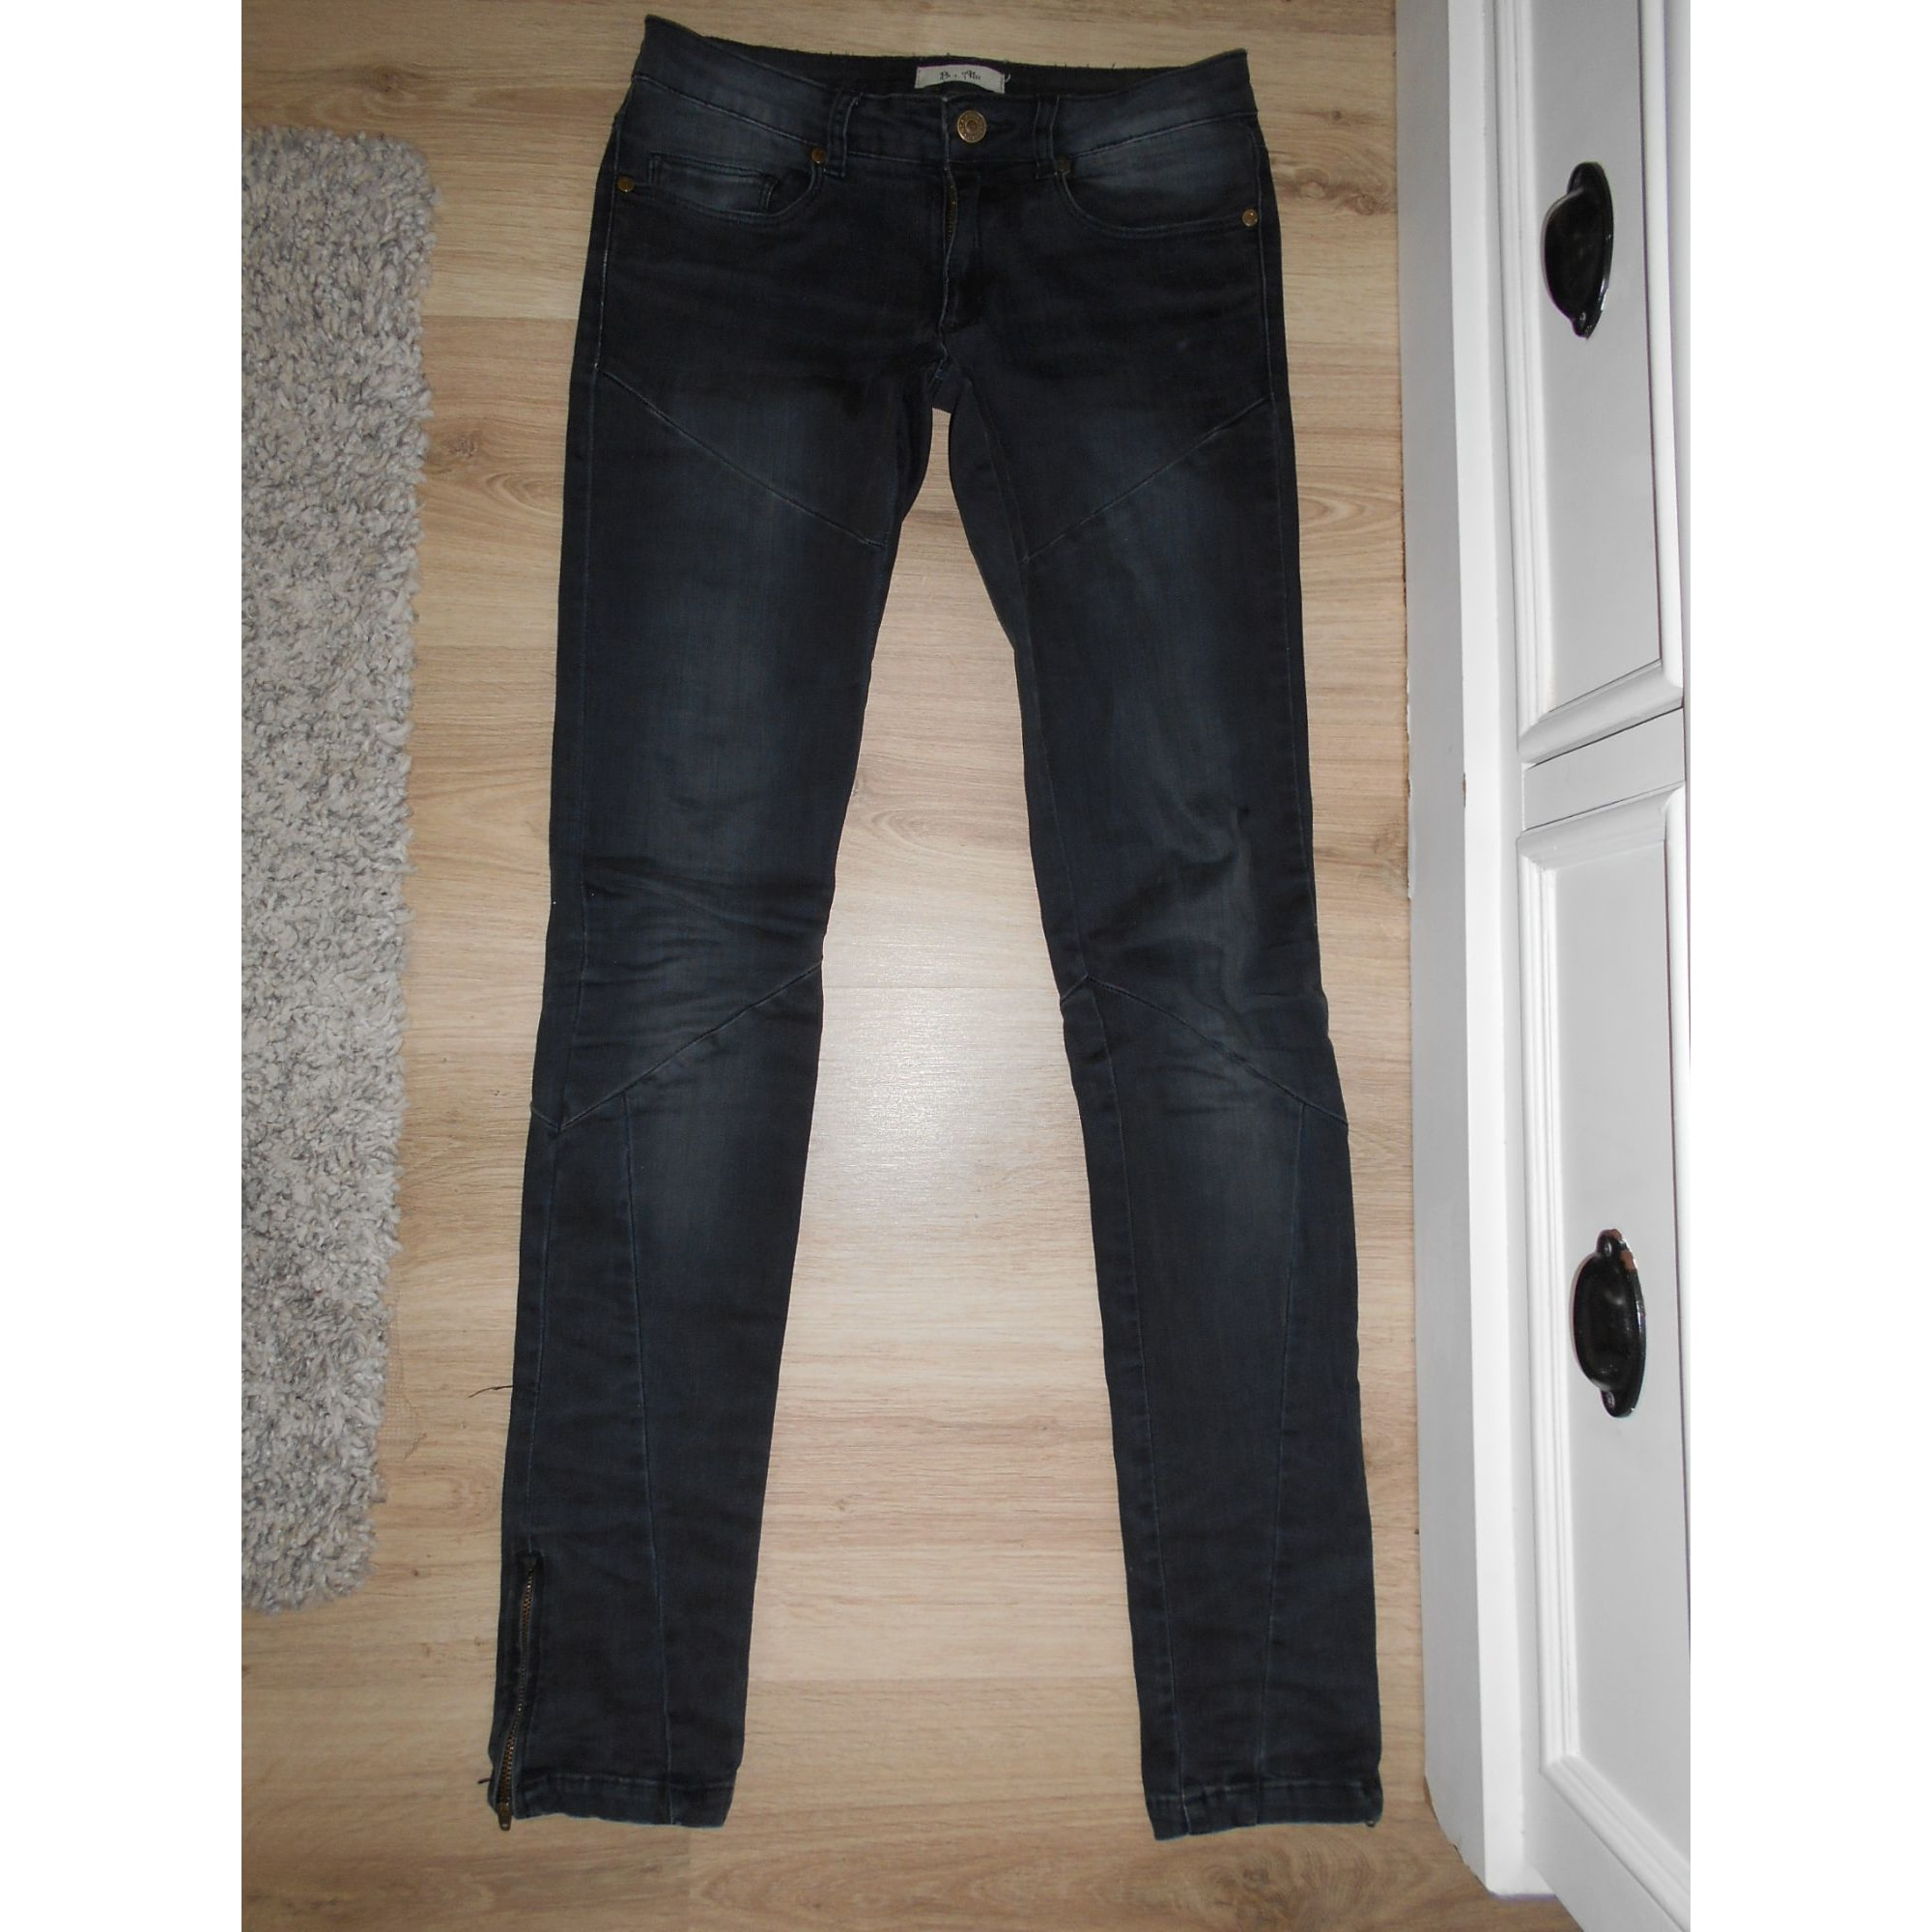 Jeans slim BEL AIR Noir